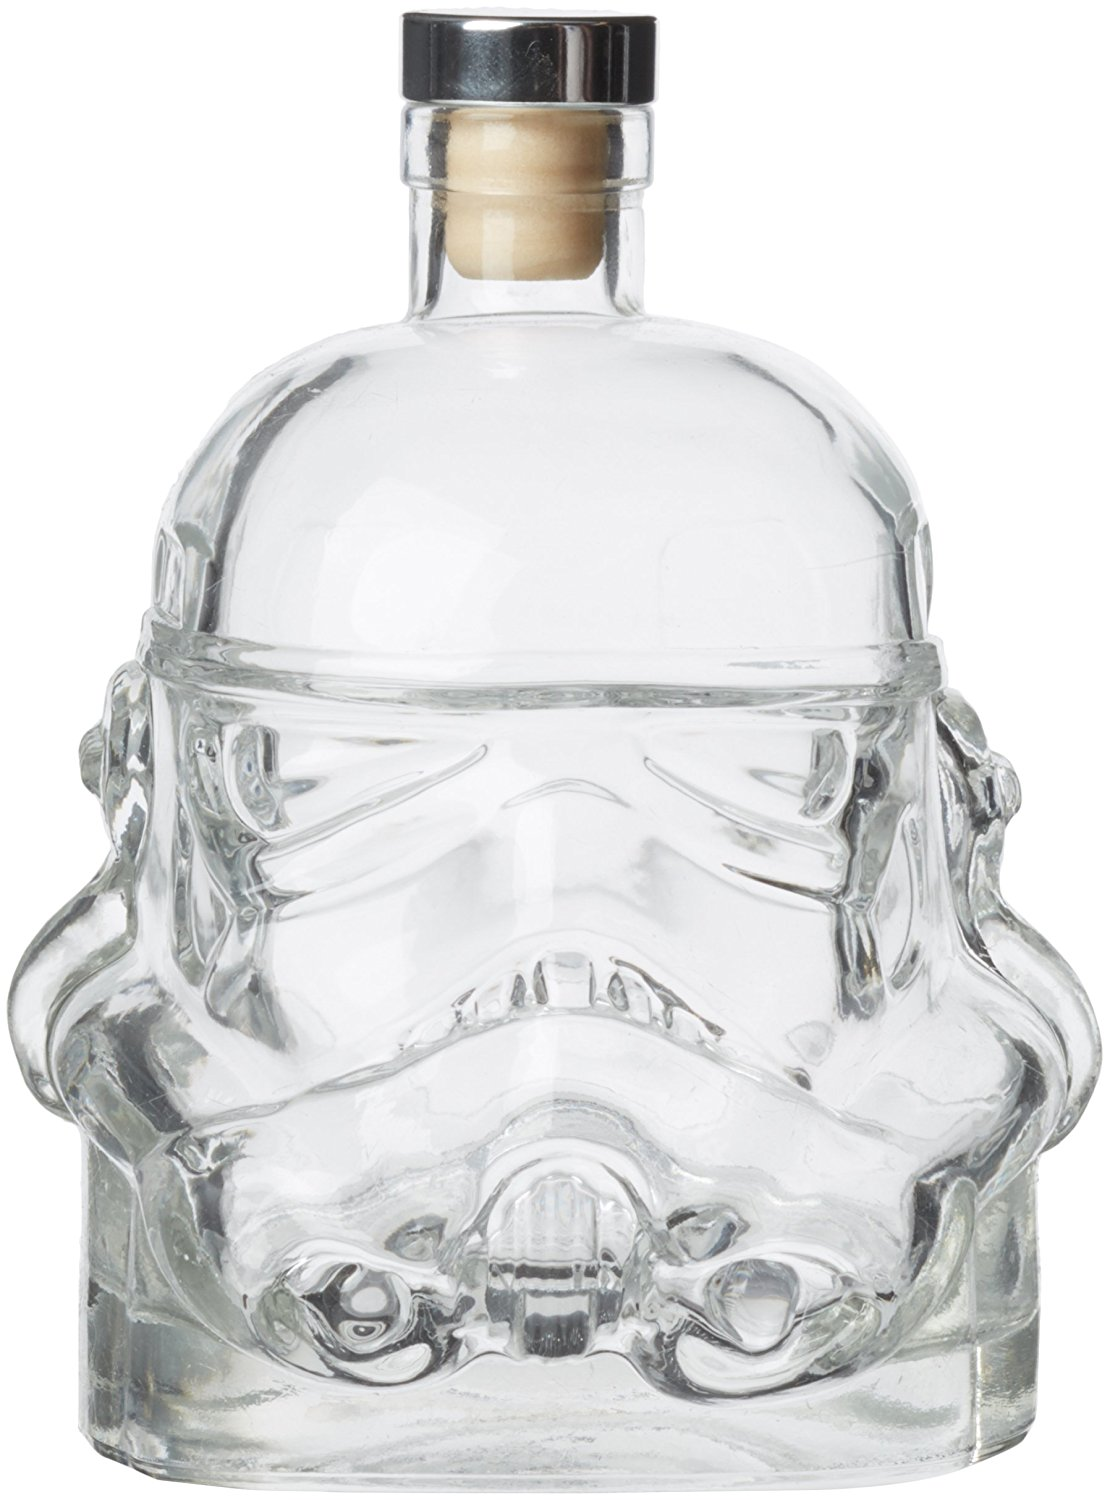 Star Wars Glass Stormtrooper Decanter